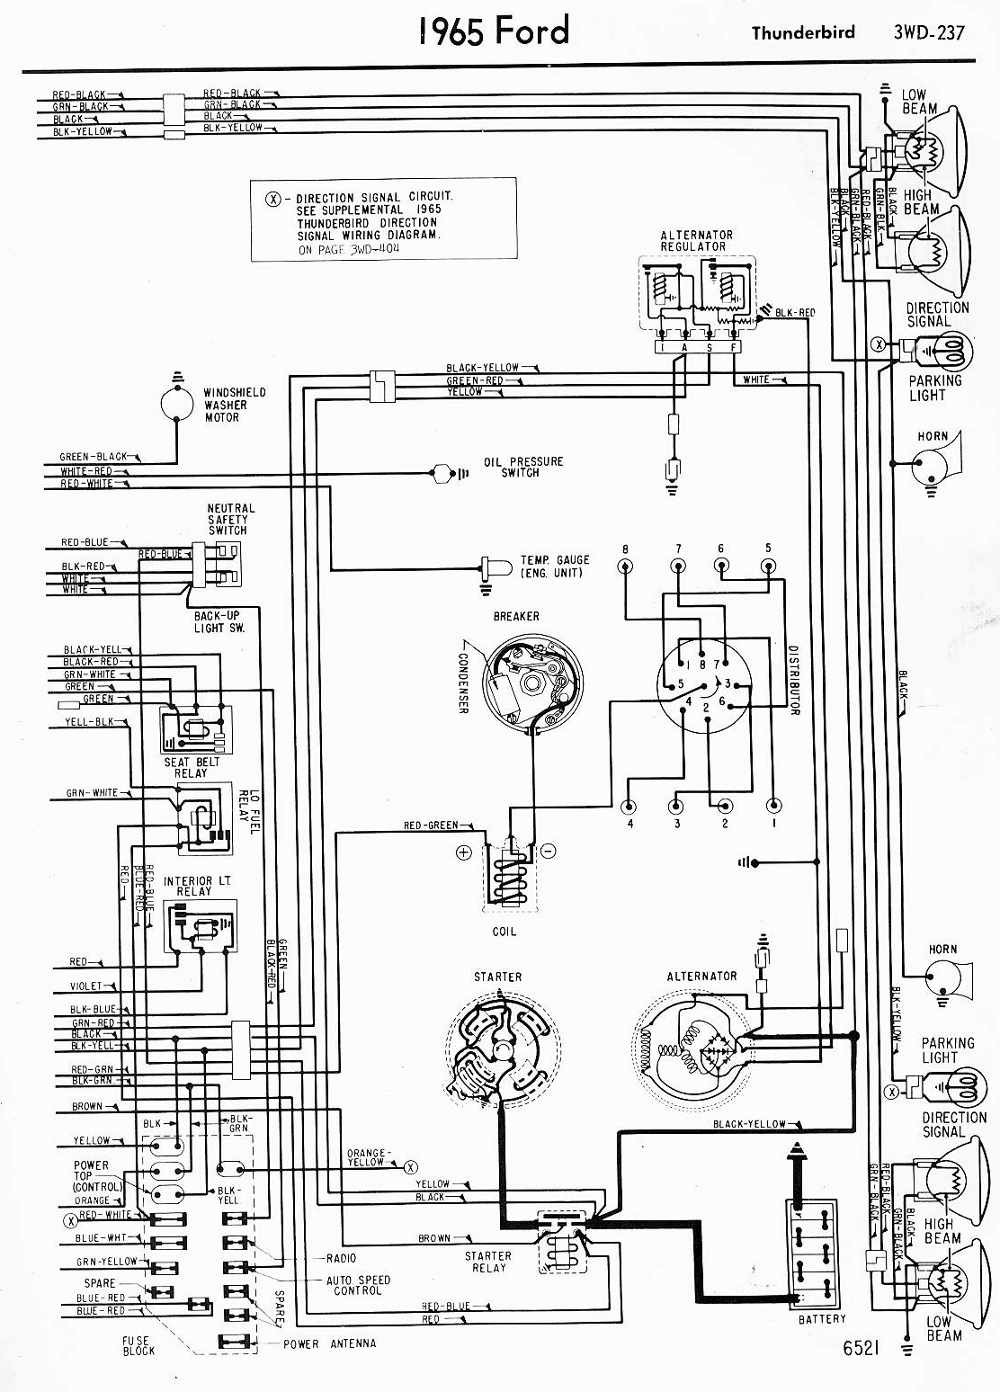 65 Mustang Radio Wiring Diagrams Auto Electrical Diagram Kawasaki Bayou 220 As Well Truck Trailer For Alternator